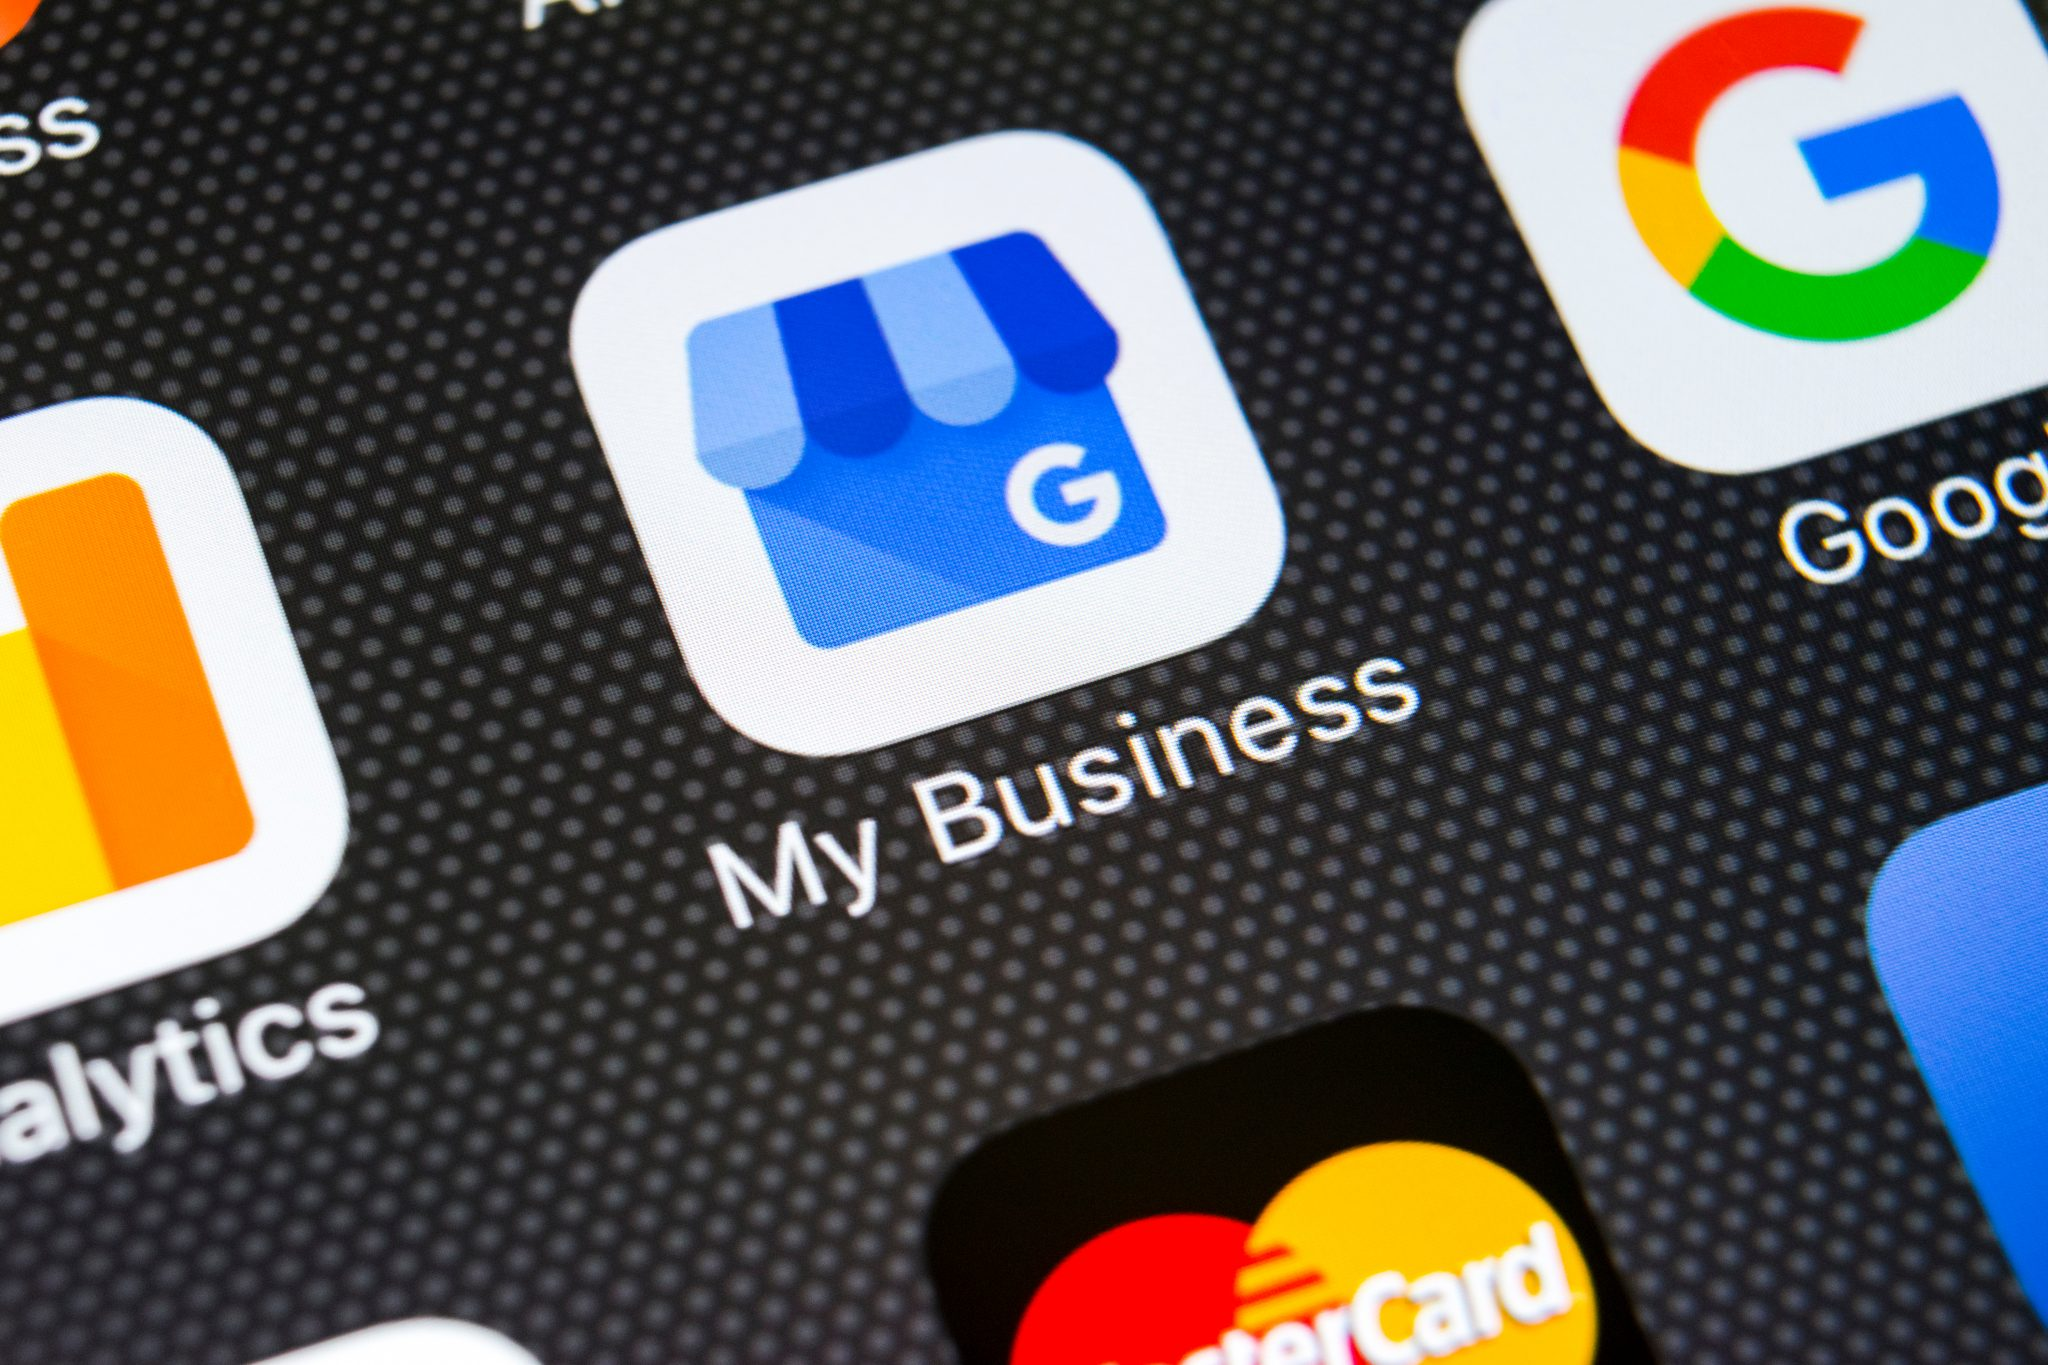 Google my business app on phone